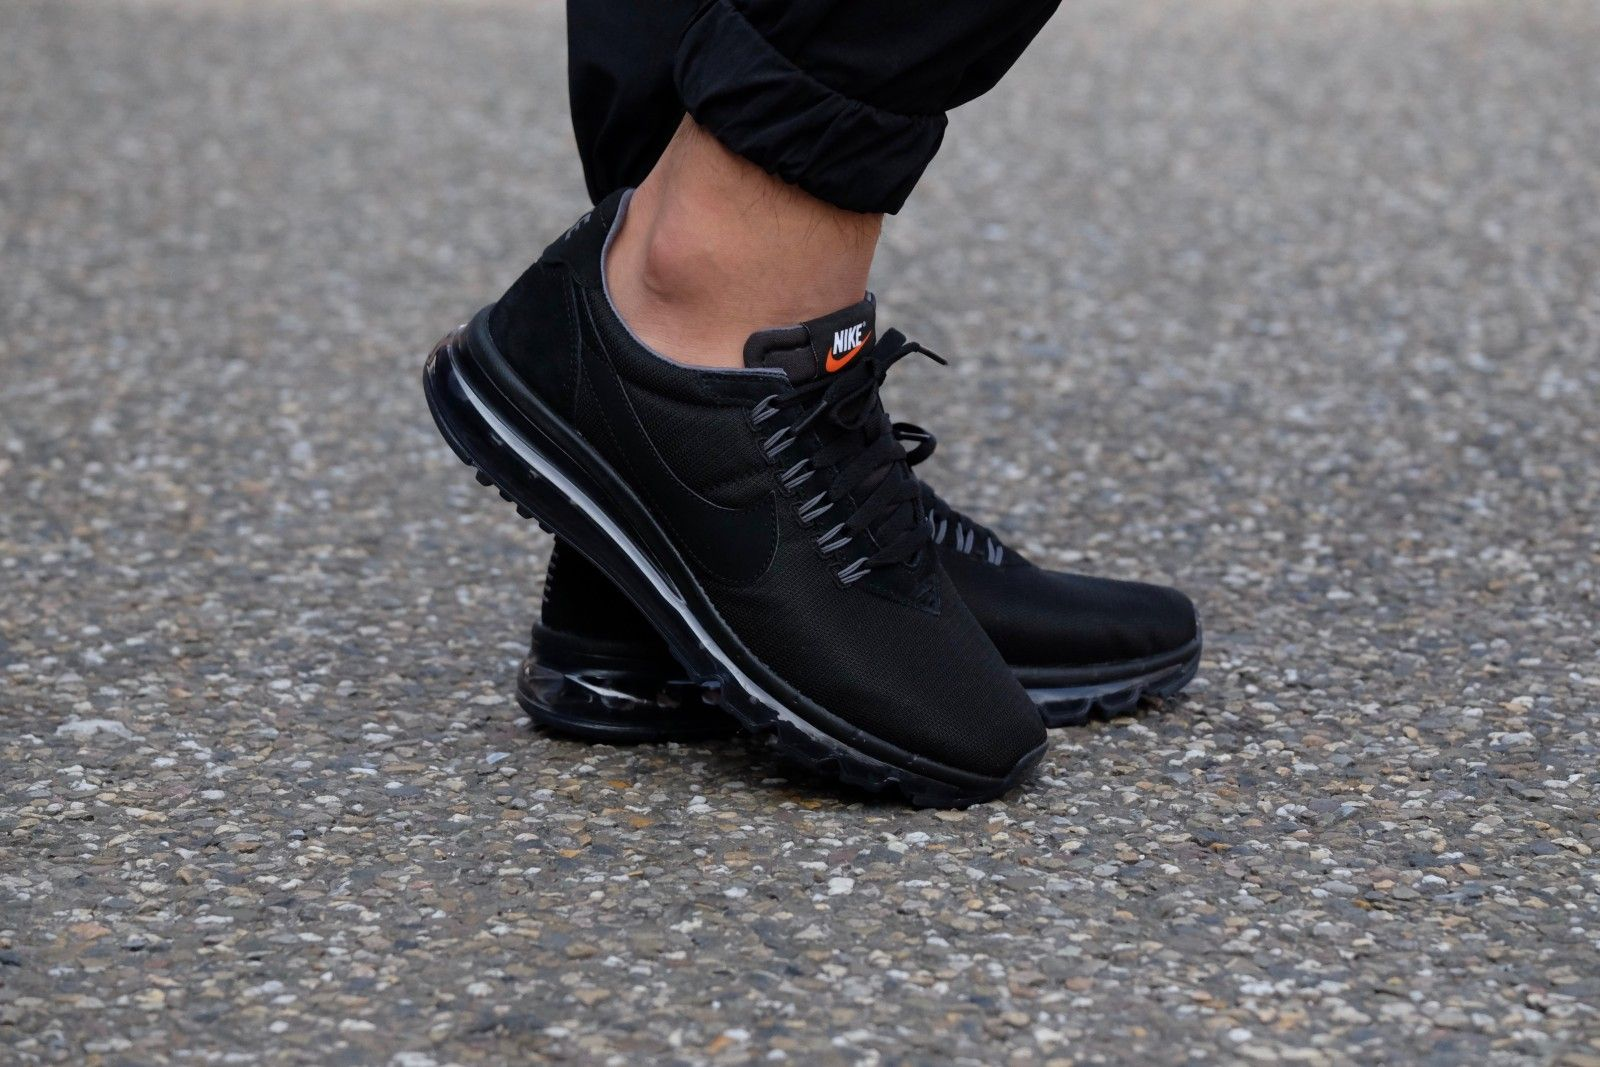 official photos b4695 98154 Nike Air Max LD-Zero Black Black-Dark Grey - 848624-005